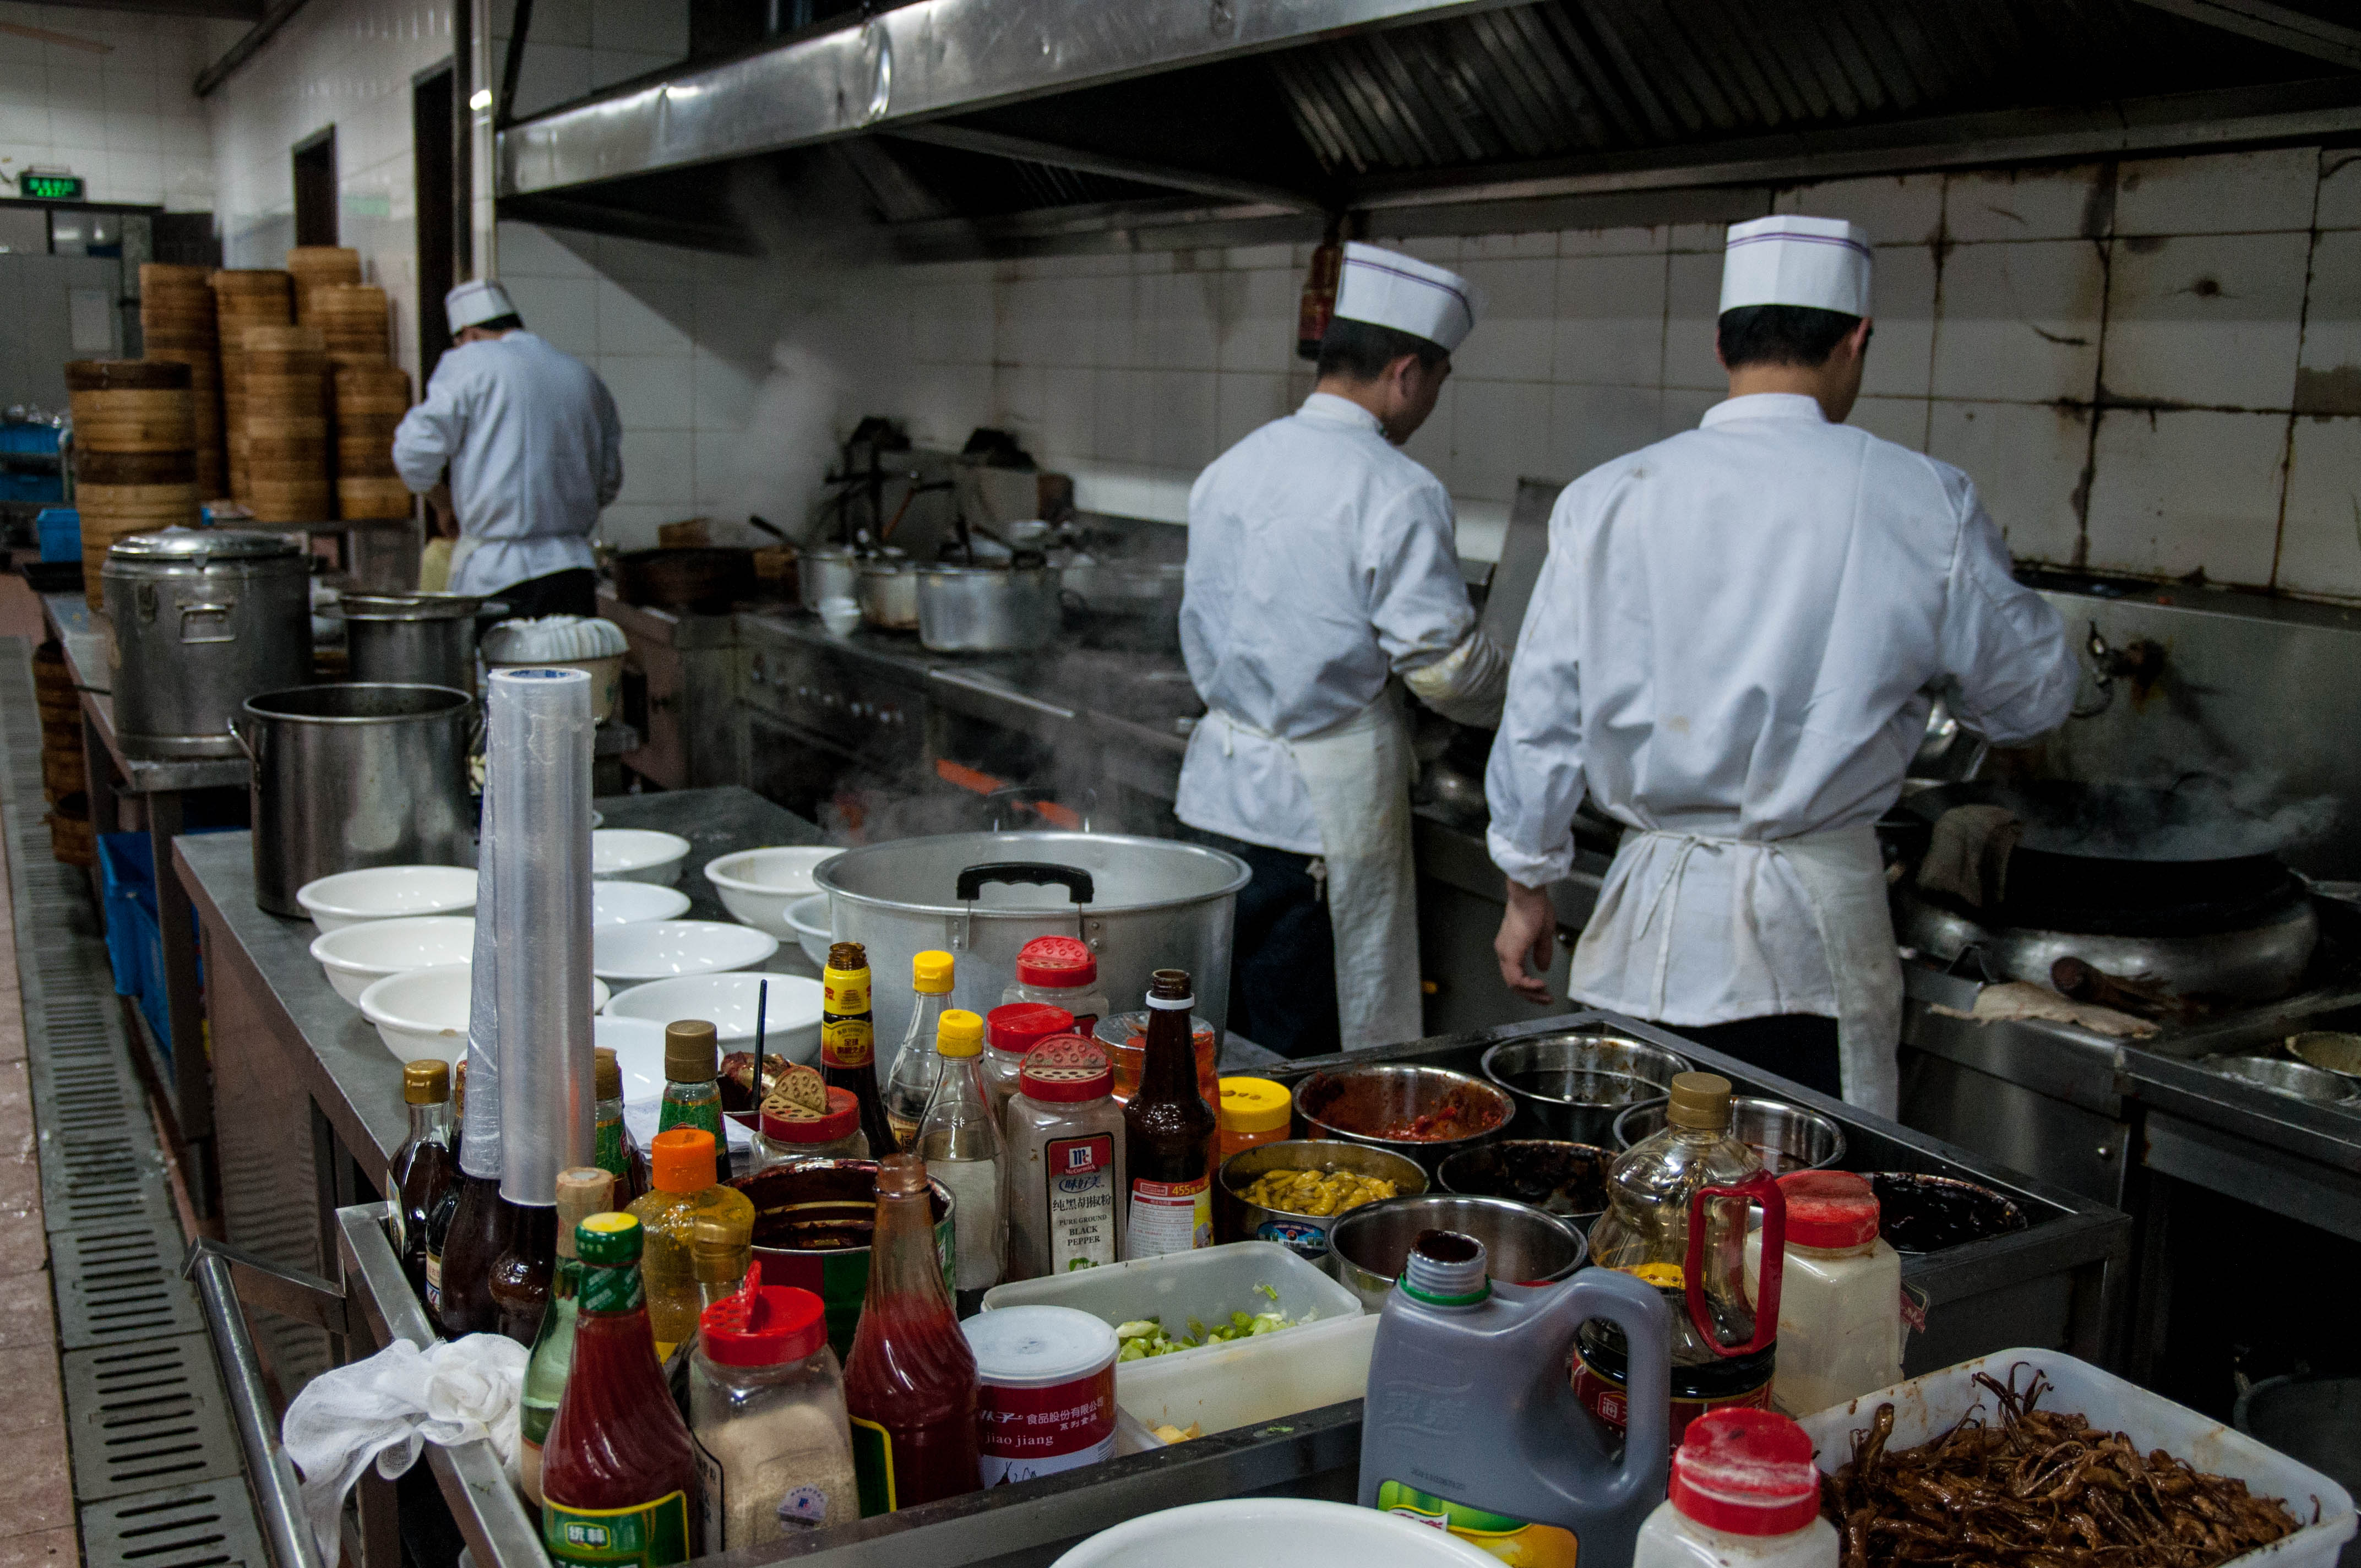 Behind The Scenes In A Chinese Restaurant Into The Middle